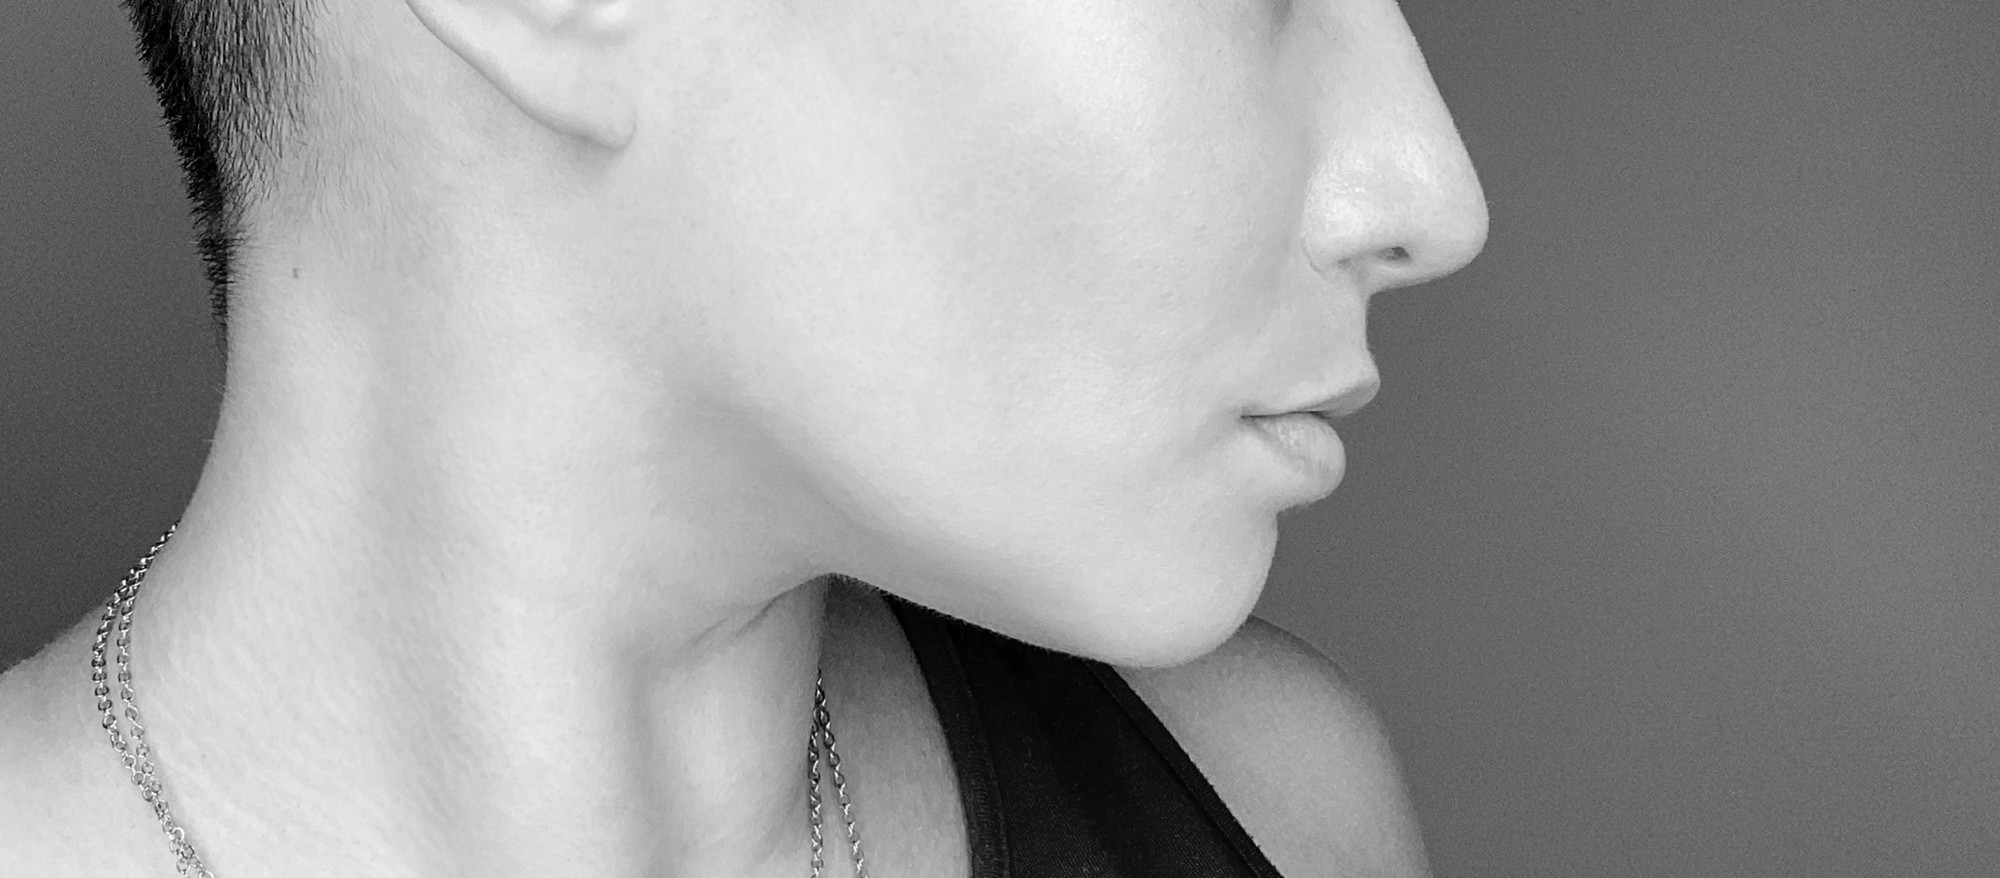 The profile of a woman's face from her collarbone to just below her eyes.